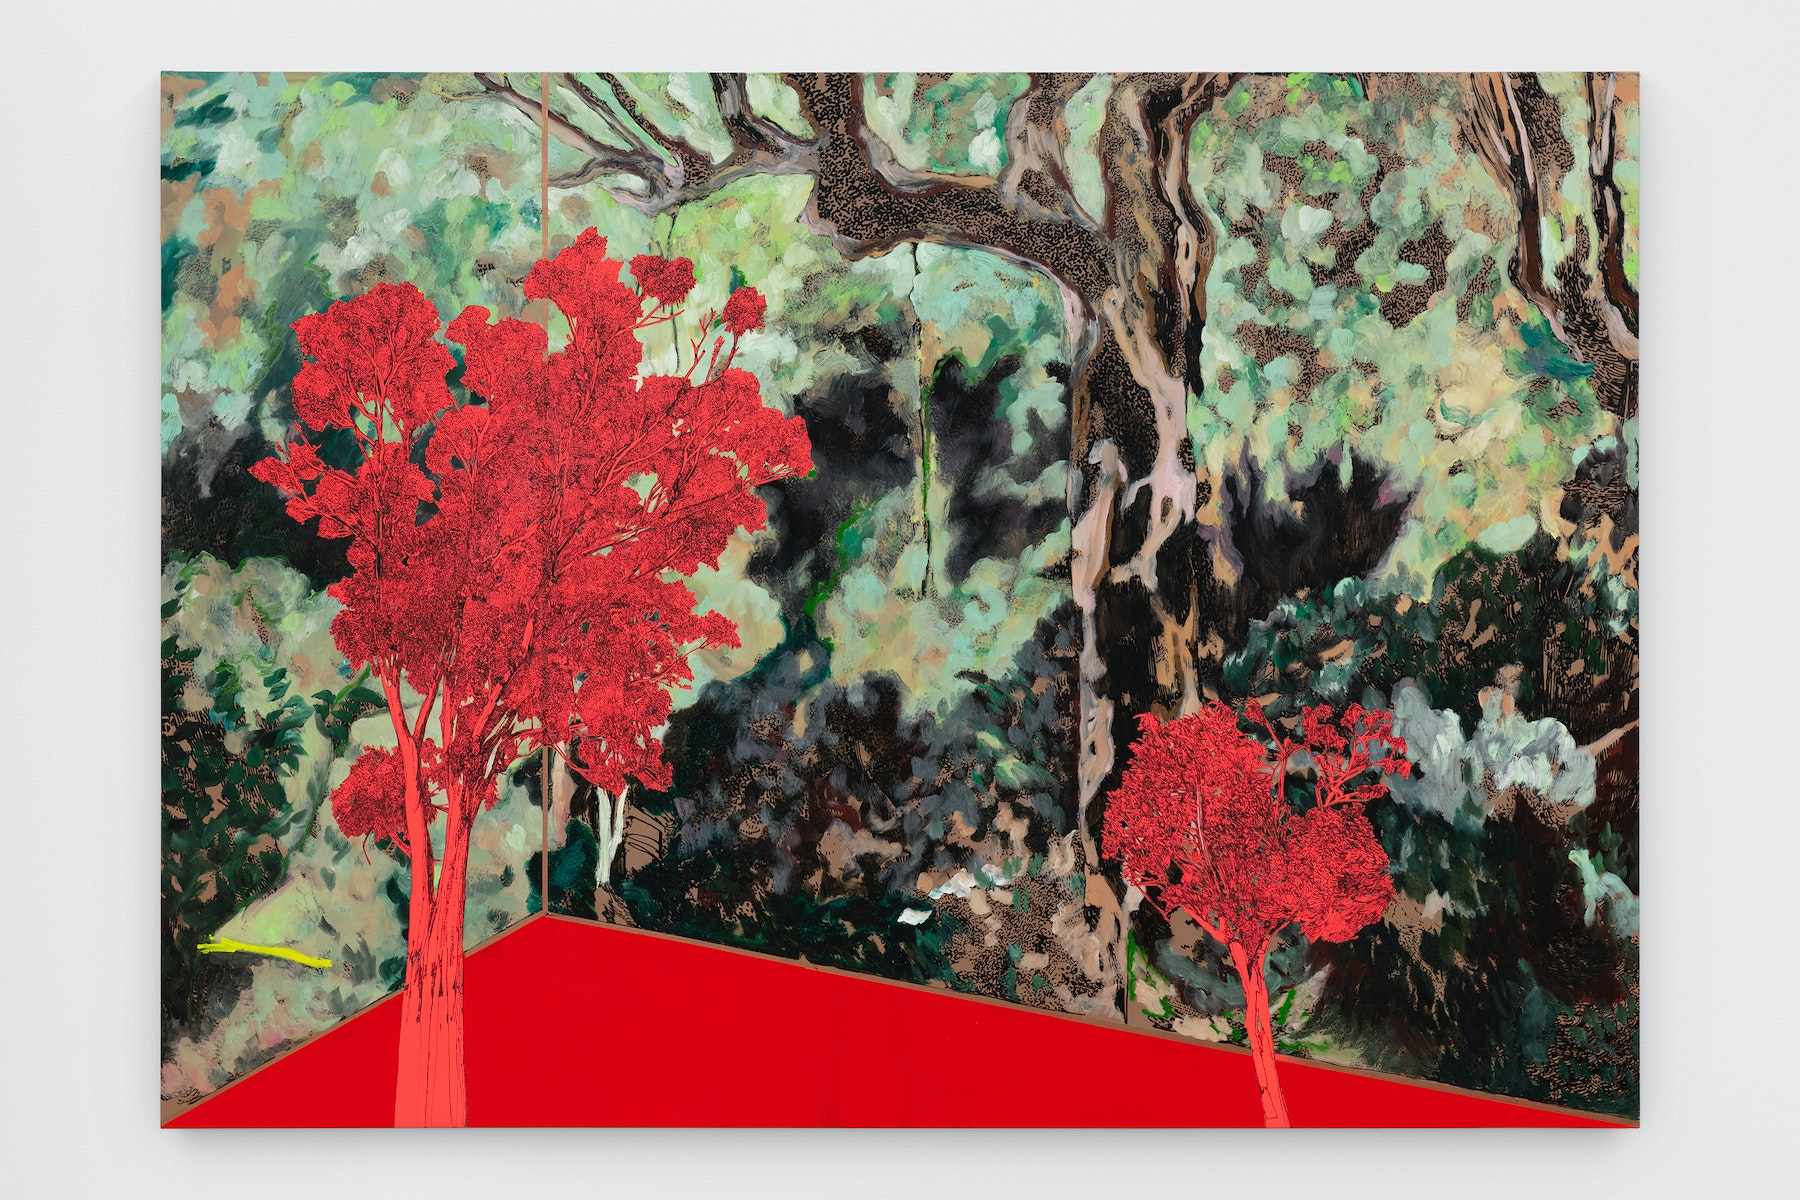 """Whitney Bedford """"Veduta (Vuillard),"""" 2020 Ink and oil on linen on hybrid panel 60 x 84"""" [HxW] (152.4 x 213.36 cm) Inventory #BED370 Courtesy of the artist and Vielmetter Los Angeles Photo credit: Evan Bedford"""